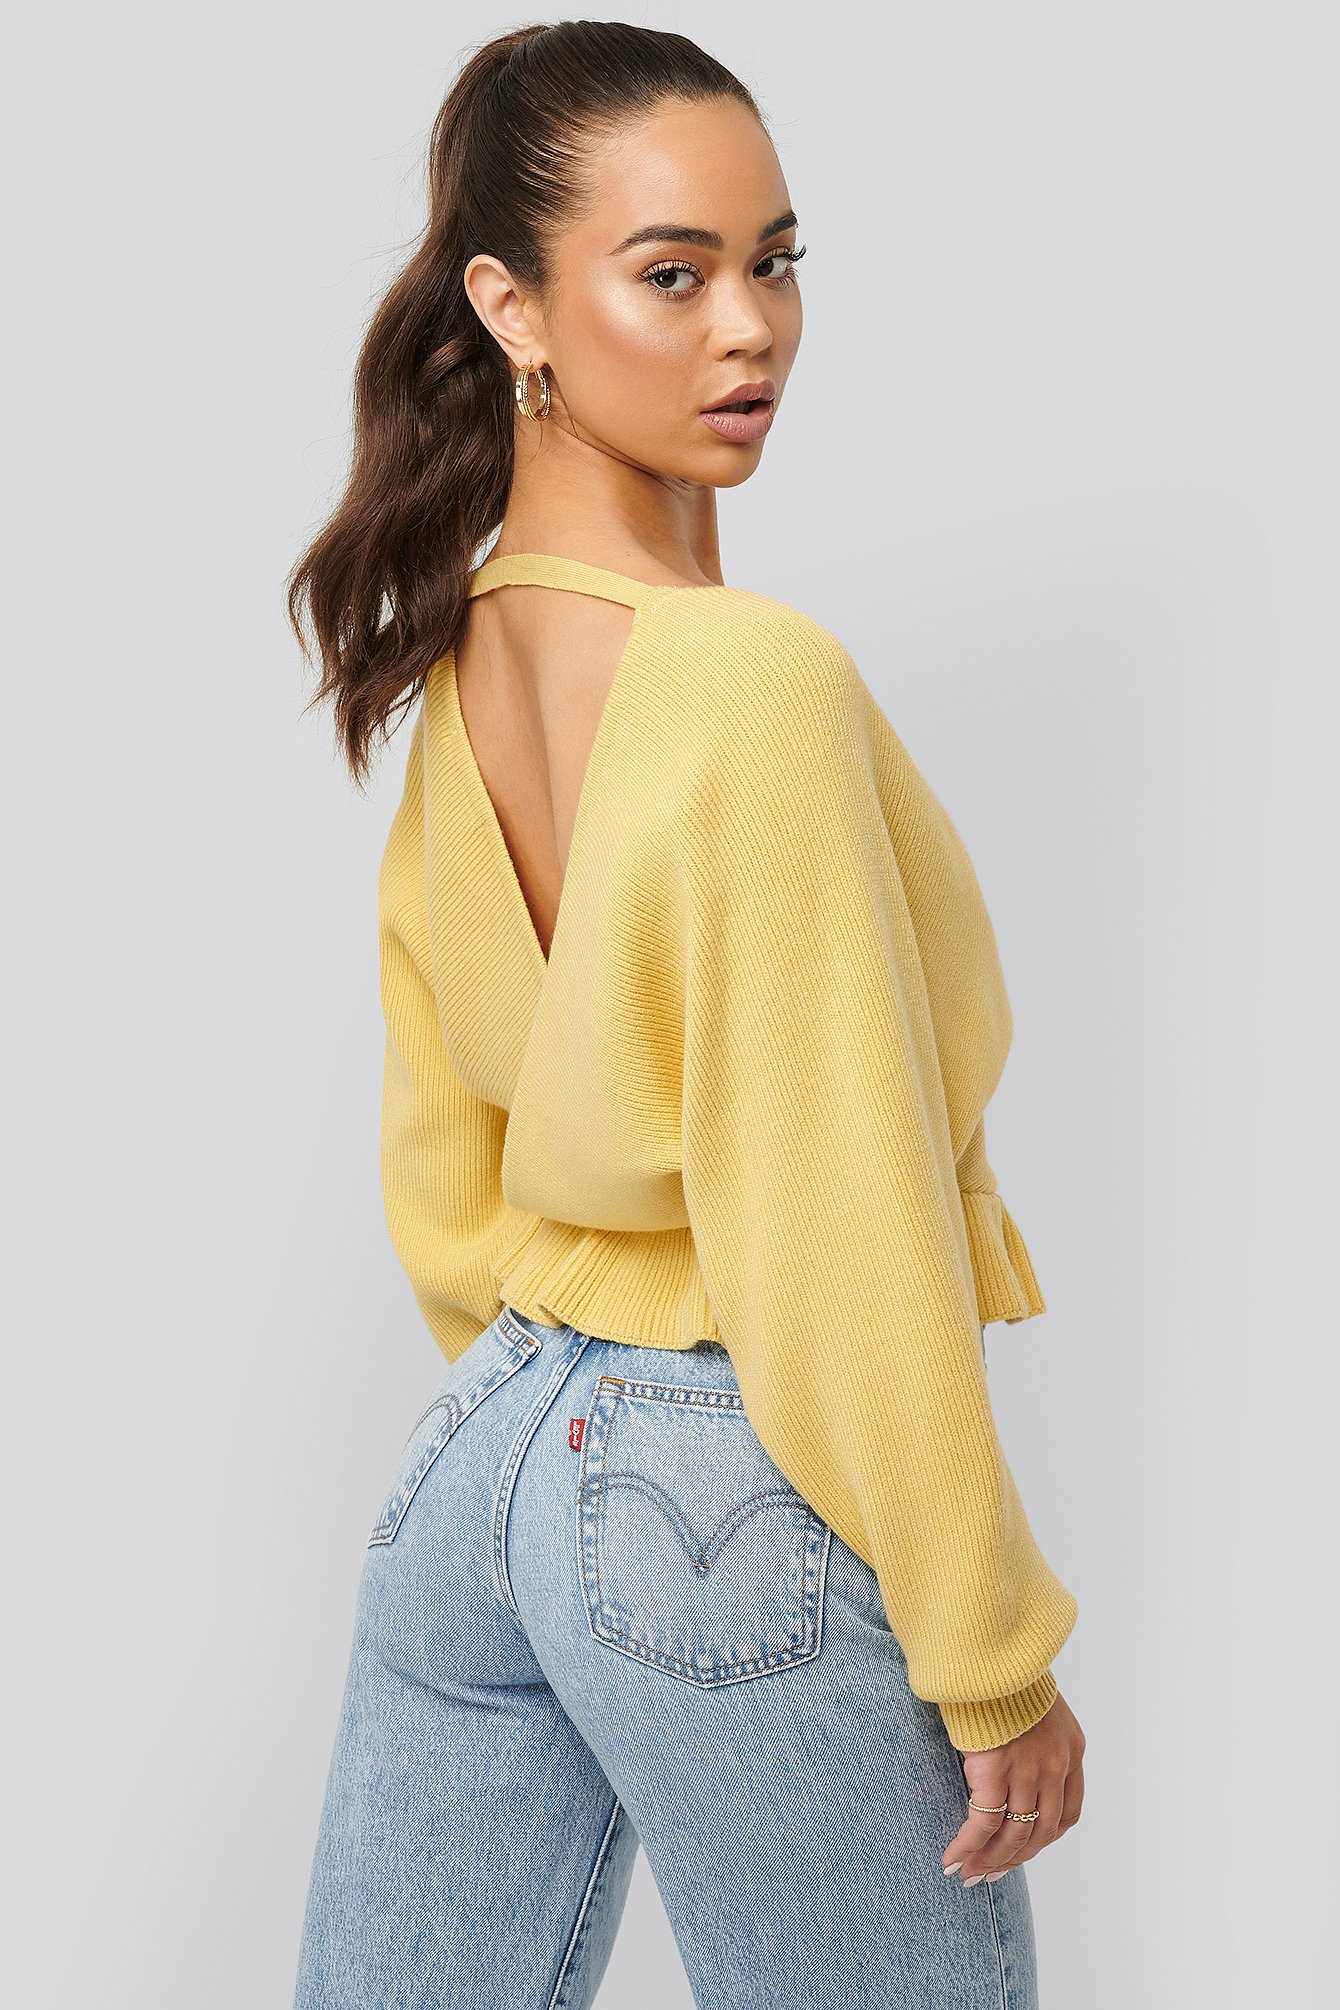 Dusty Yellow Overlap Flounce Knitted Sweater